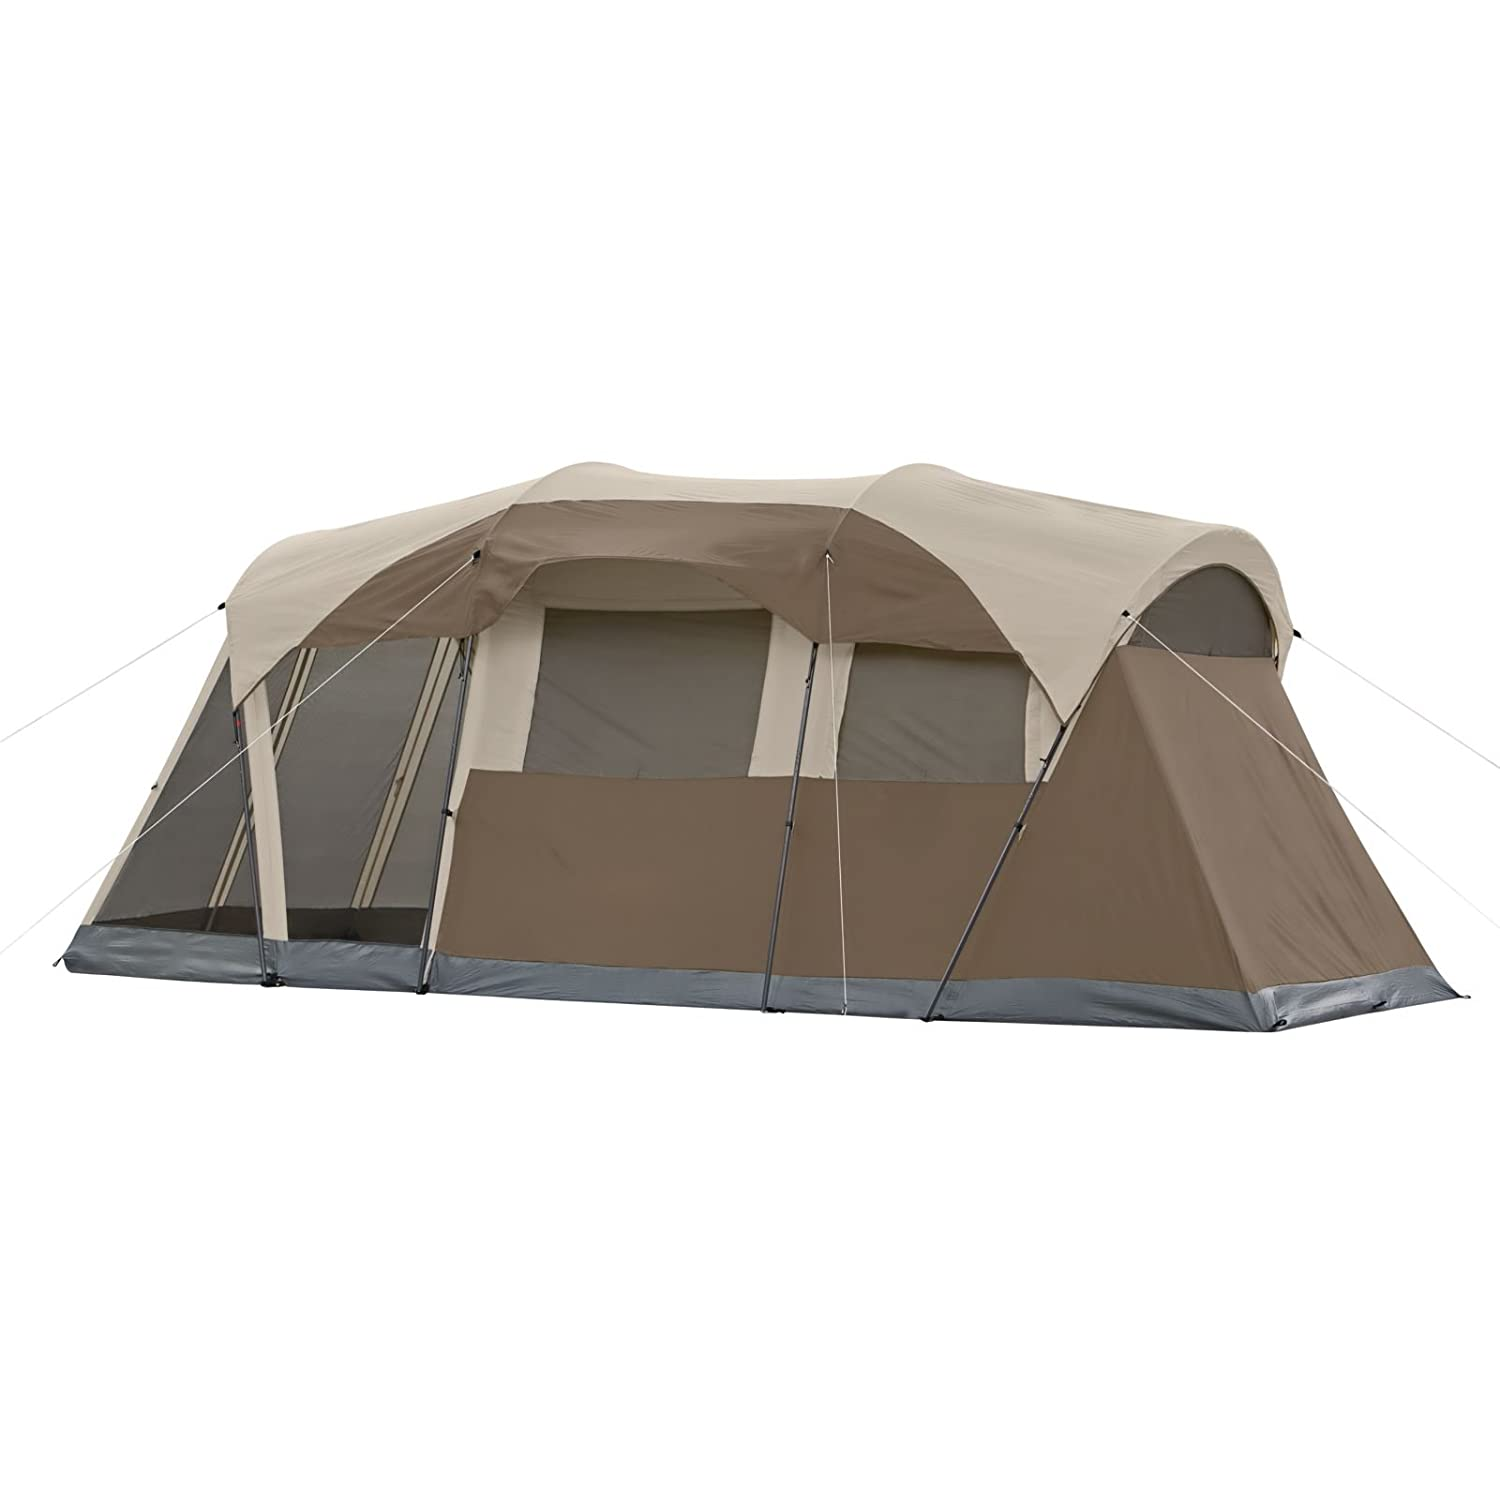 Amazon.com  Coleman WeatherMaster 6-Person Tent with Screen Room  Sports u0026 Outdoors  sc 1 st  Amazon.com : 6 man instant tent - memphite.com